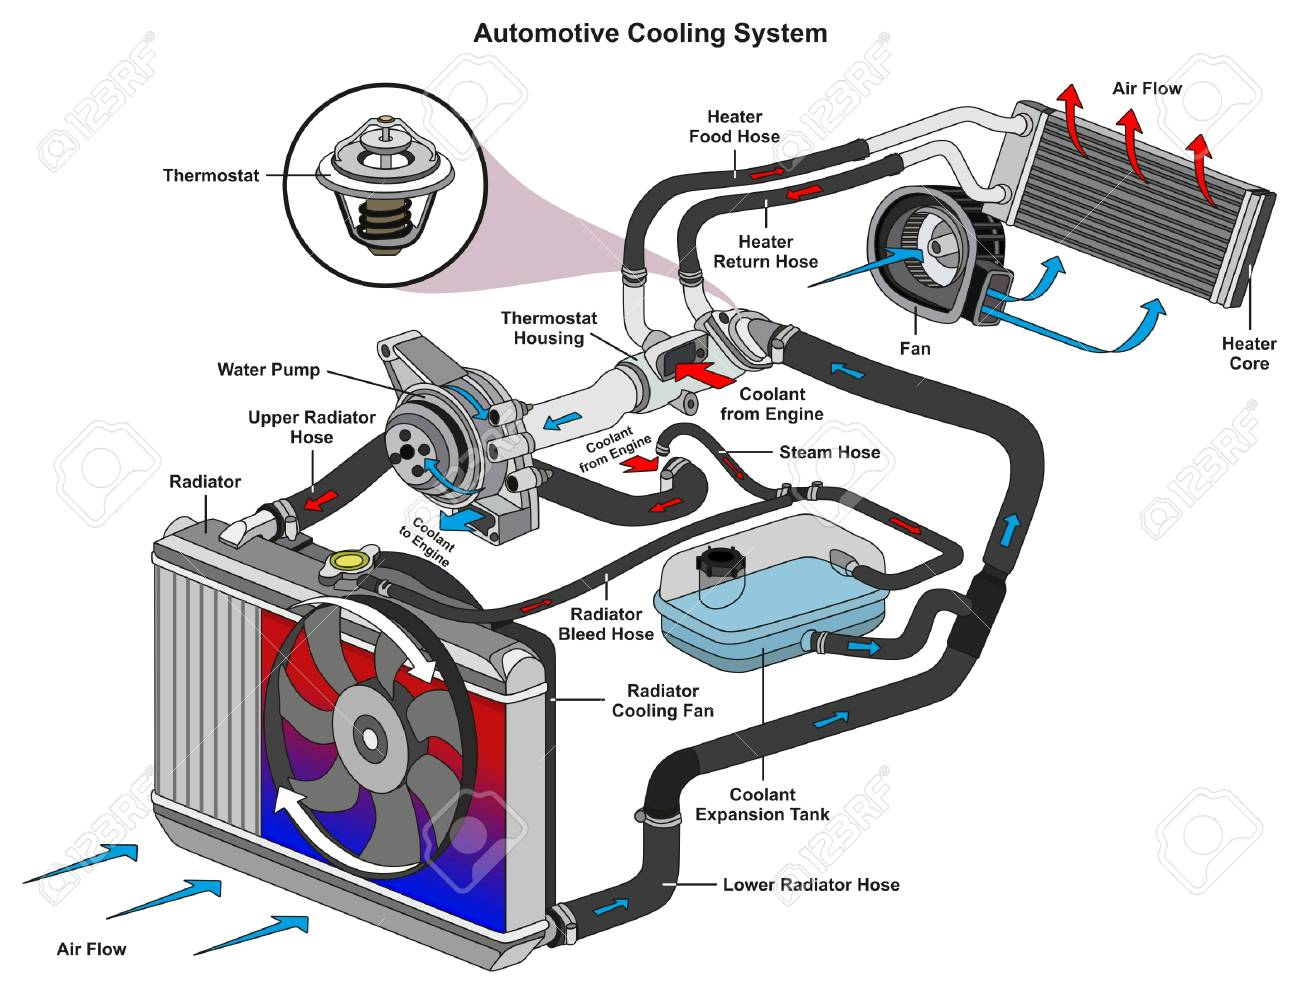 hight resolution of automotive cooling system infographic diagram showing process car heater hose diagram automotive cooling system infographic diagram